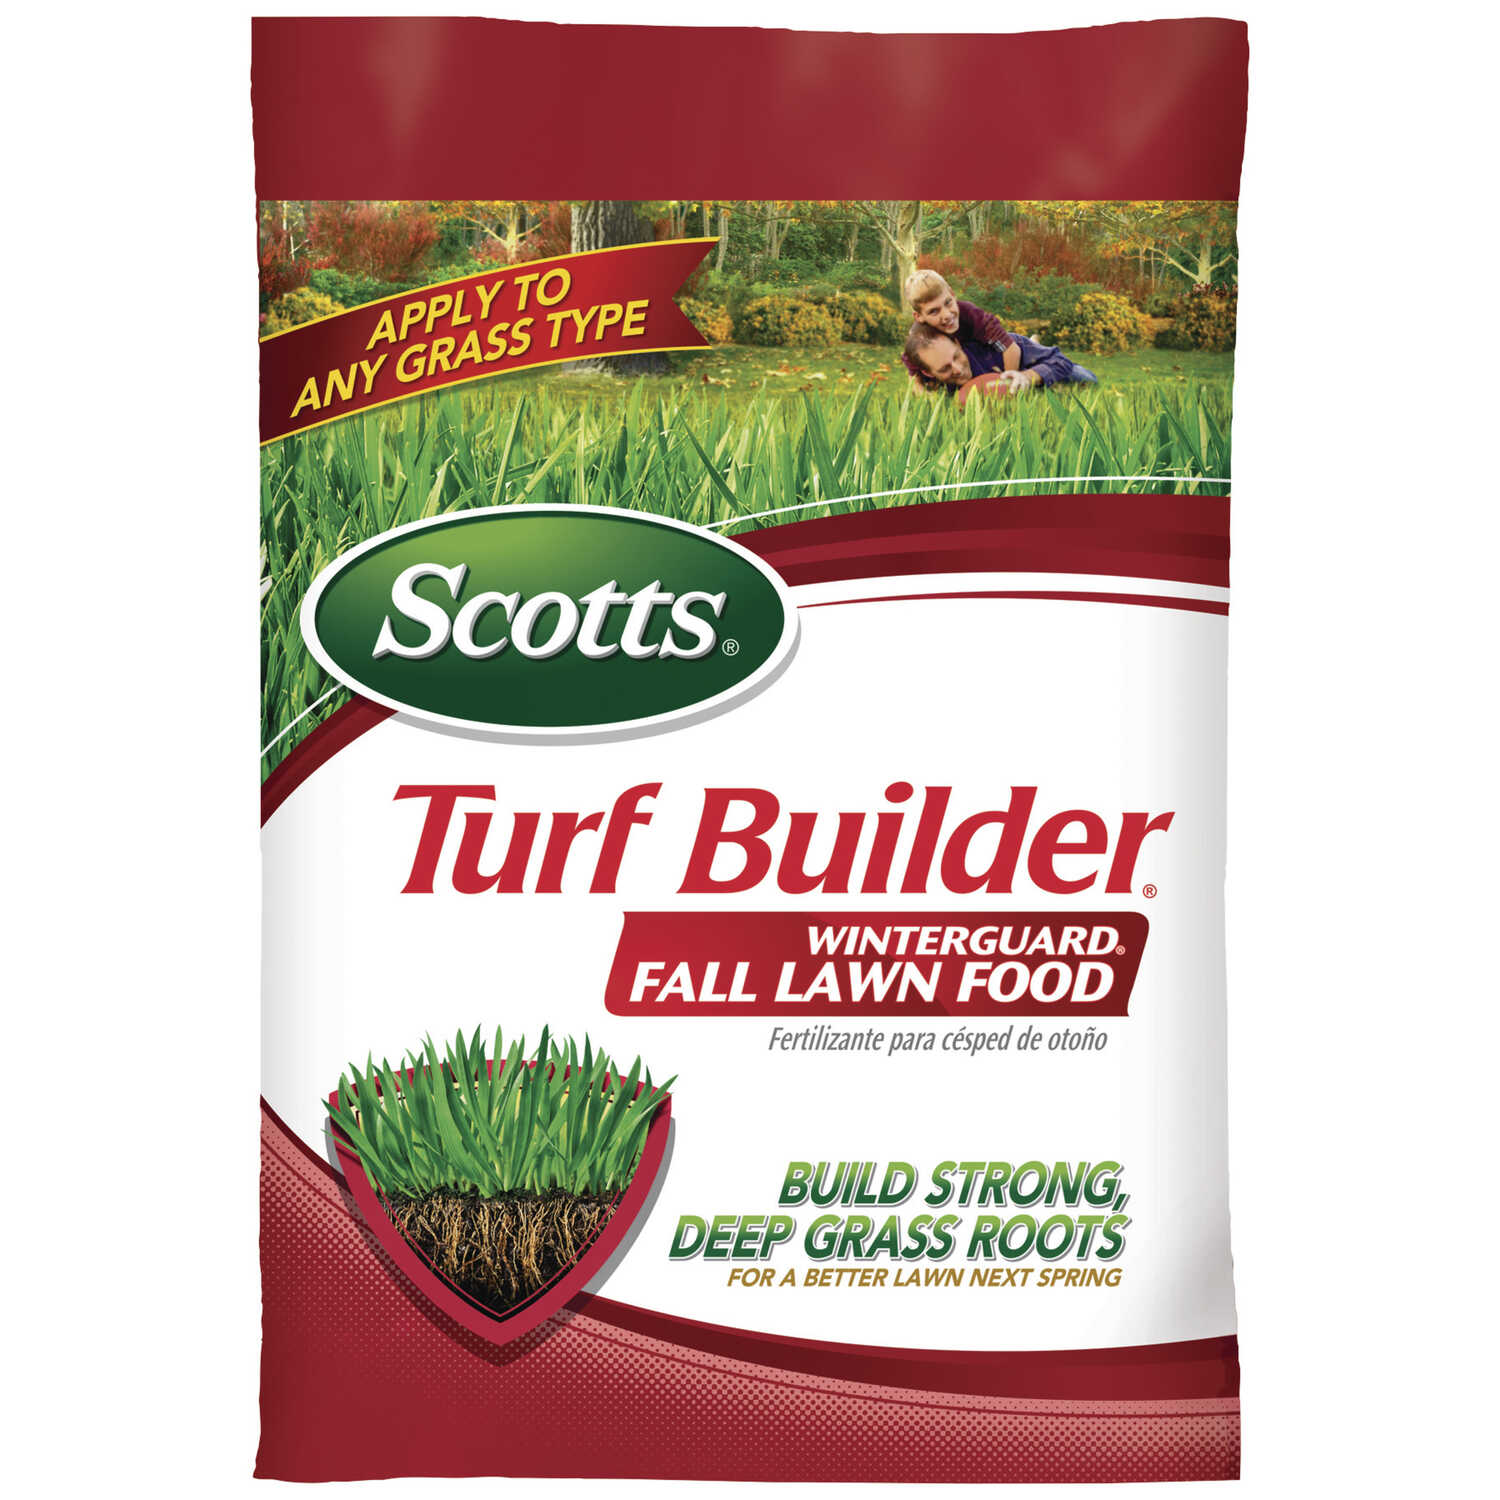 Scotts  Turf Builder Winterguard  32-0-10  Lawn Food  For All Grass Types